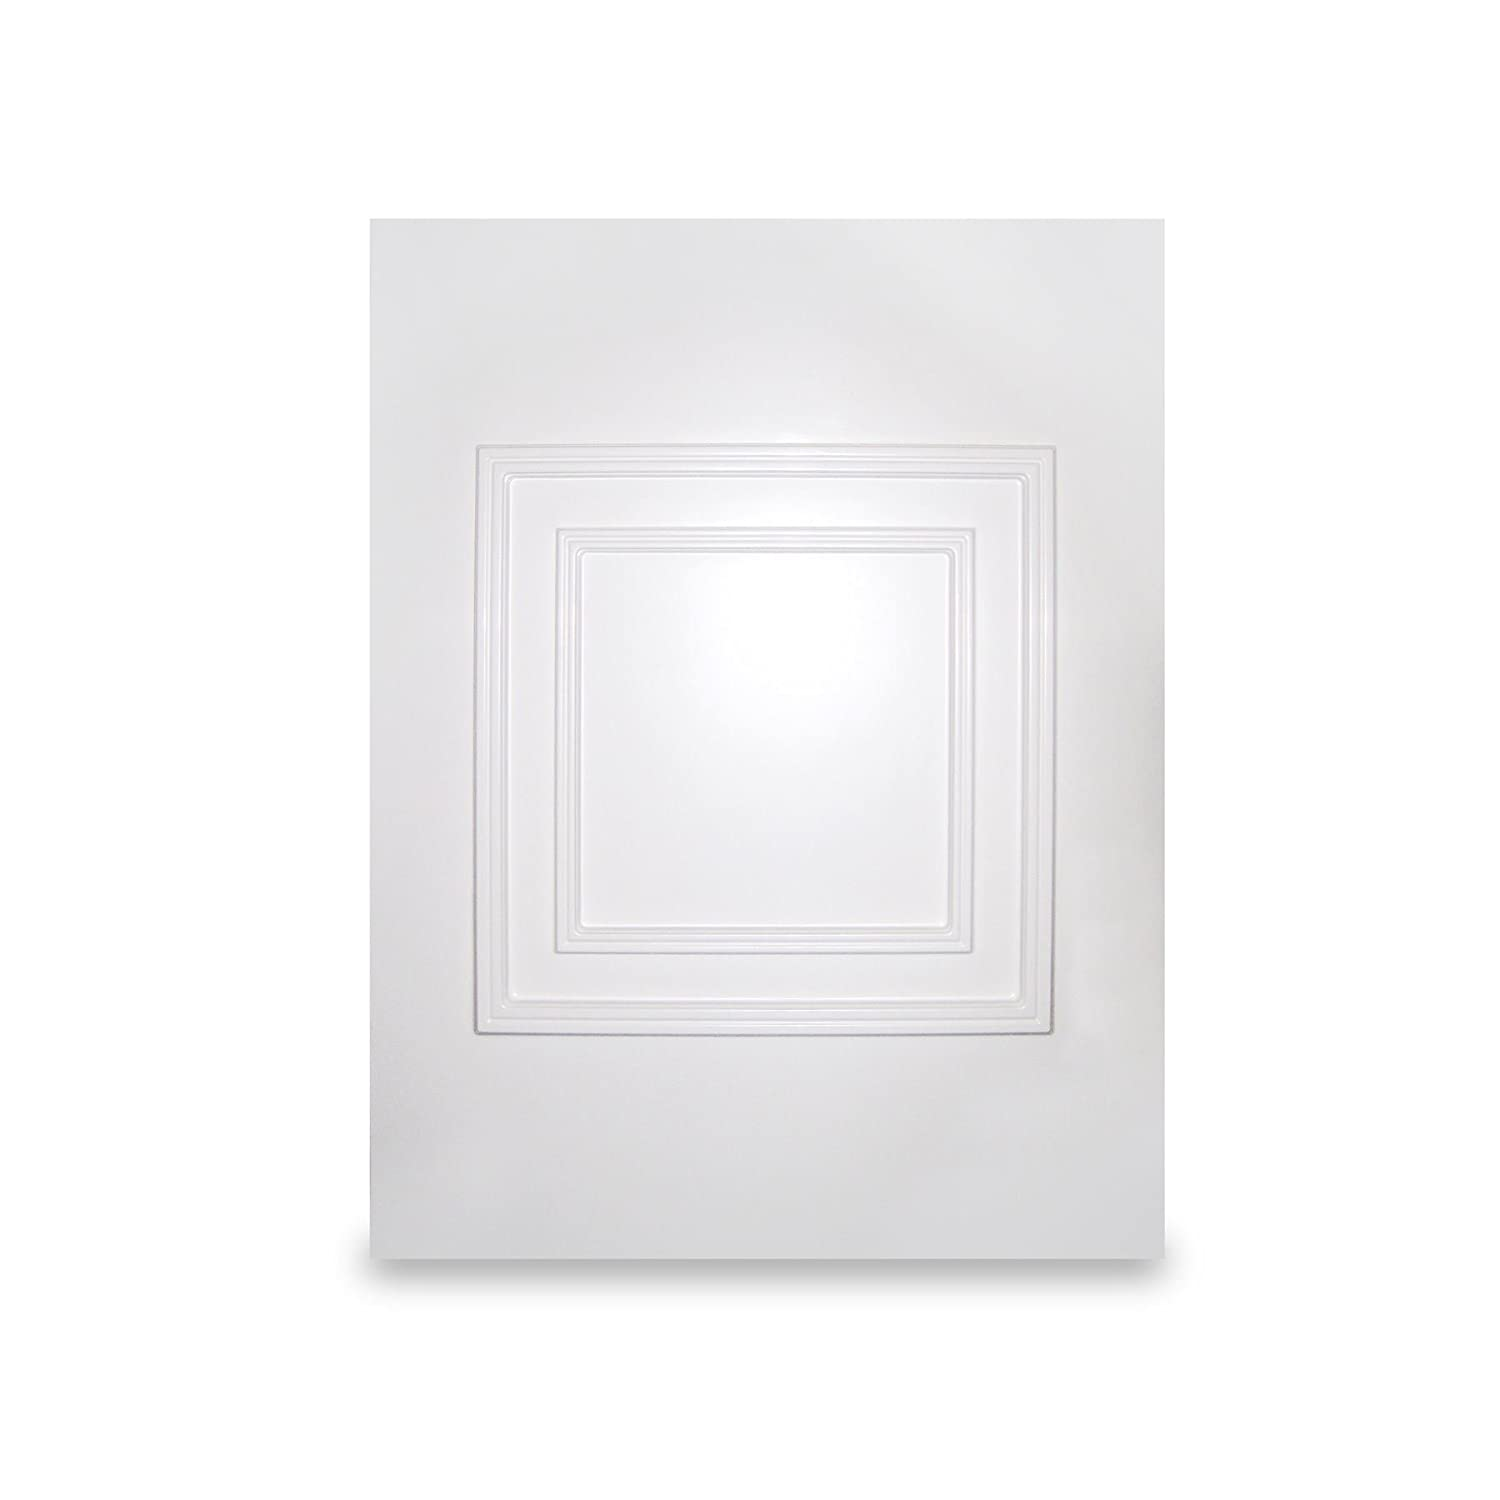 White UPVC Hanover Half Door Panel MDF Reinforced Raised Moulded (w:700mm x h:900mm) 28mm Thick Truly PVC Supplies